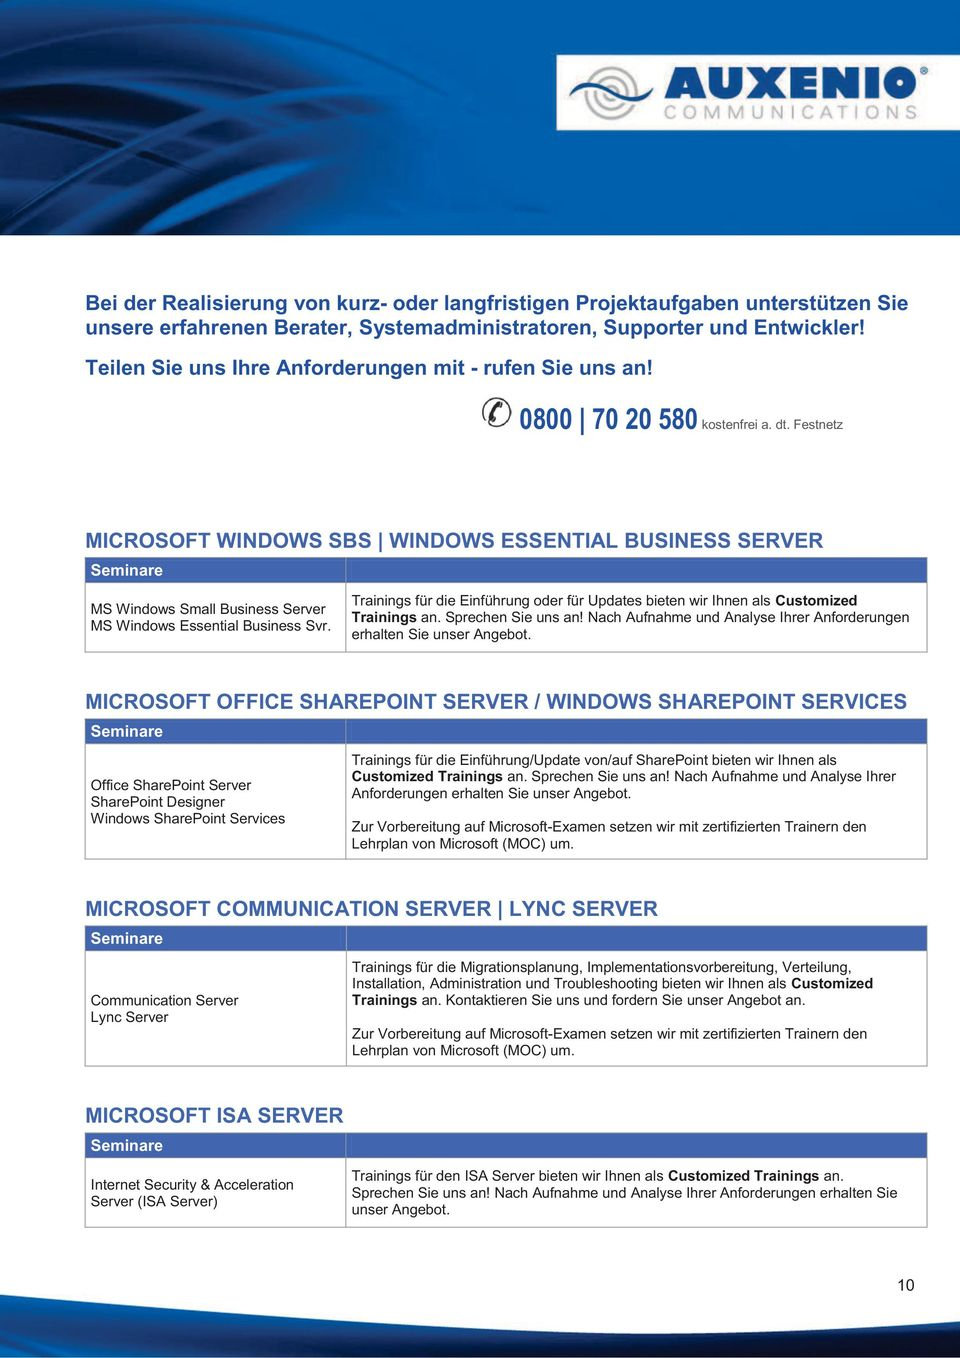 Festnetz MICROSOFT WINDOWS SBS WINDOWS ESSENTIAL BUSINESS SERVER MS Windows Small Business Server MS Windows Essential Business Svr.